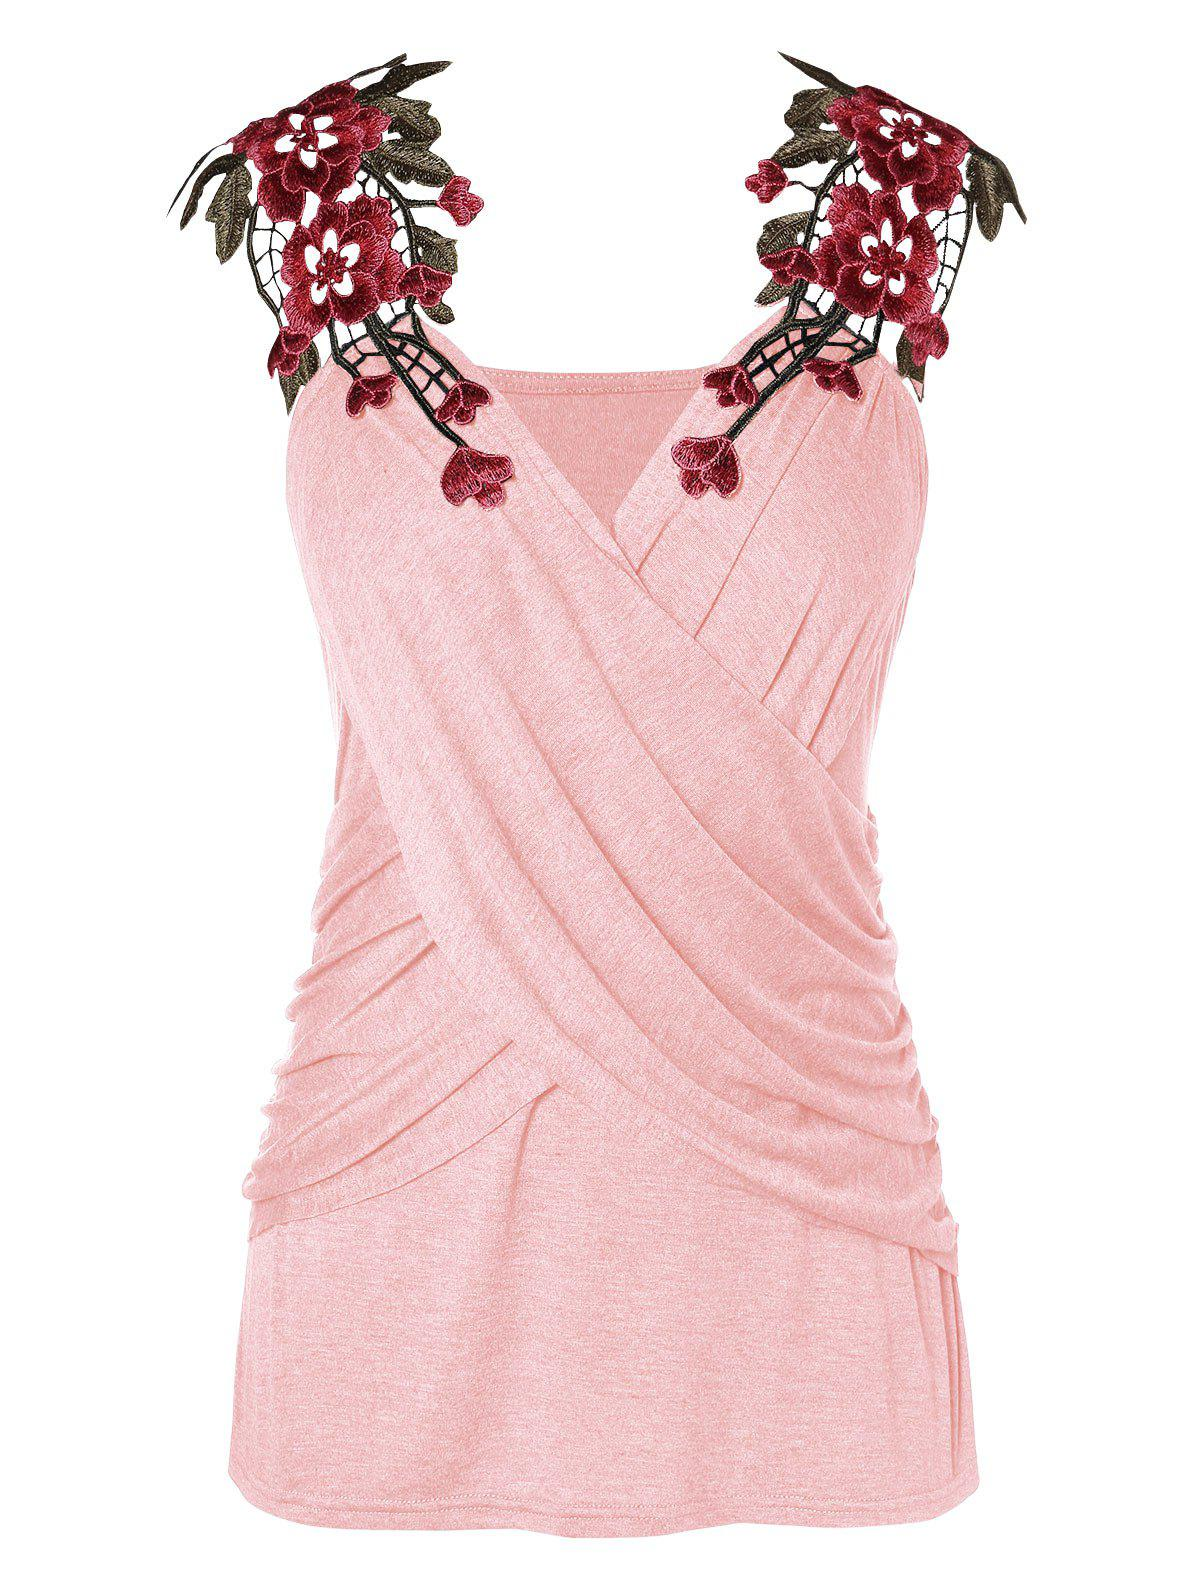 Plus Size Criss Cross Lace Applique Tank Top - PIG PINK 4X